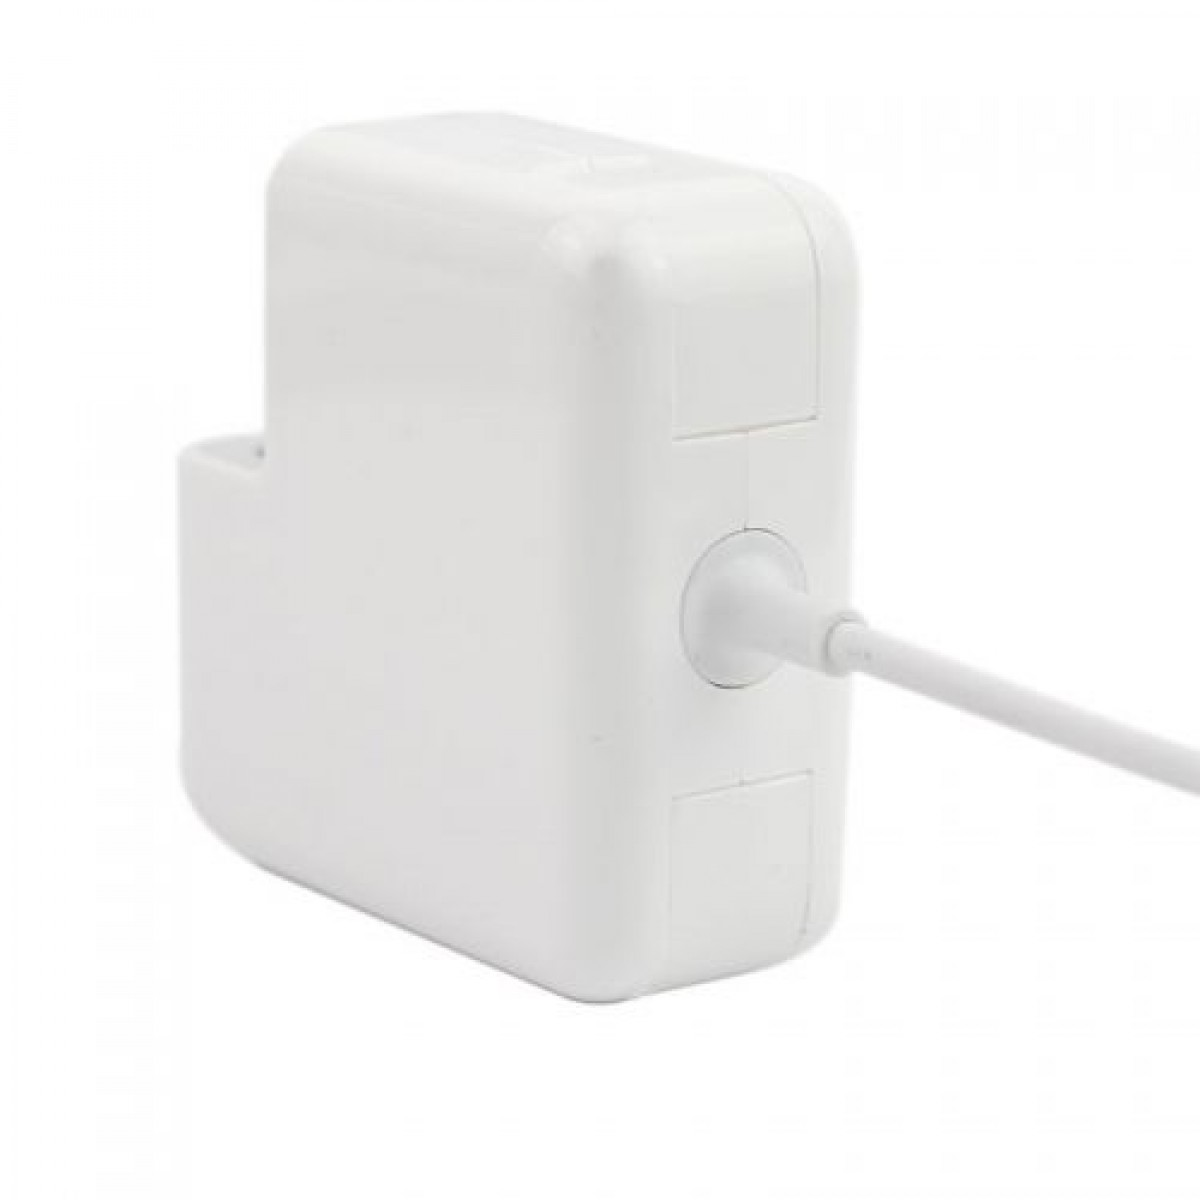 Original 60w Mains Charger For Apple Computer Laptop